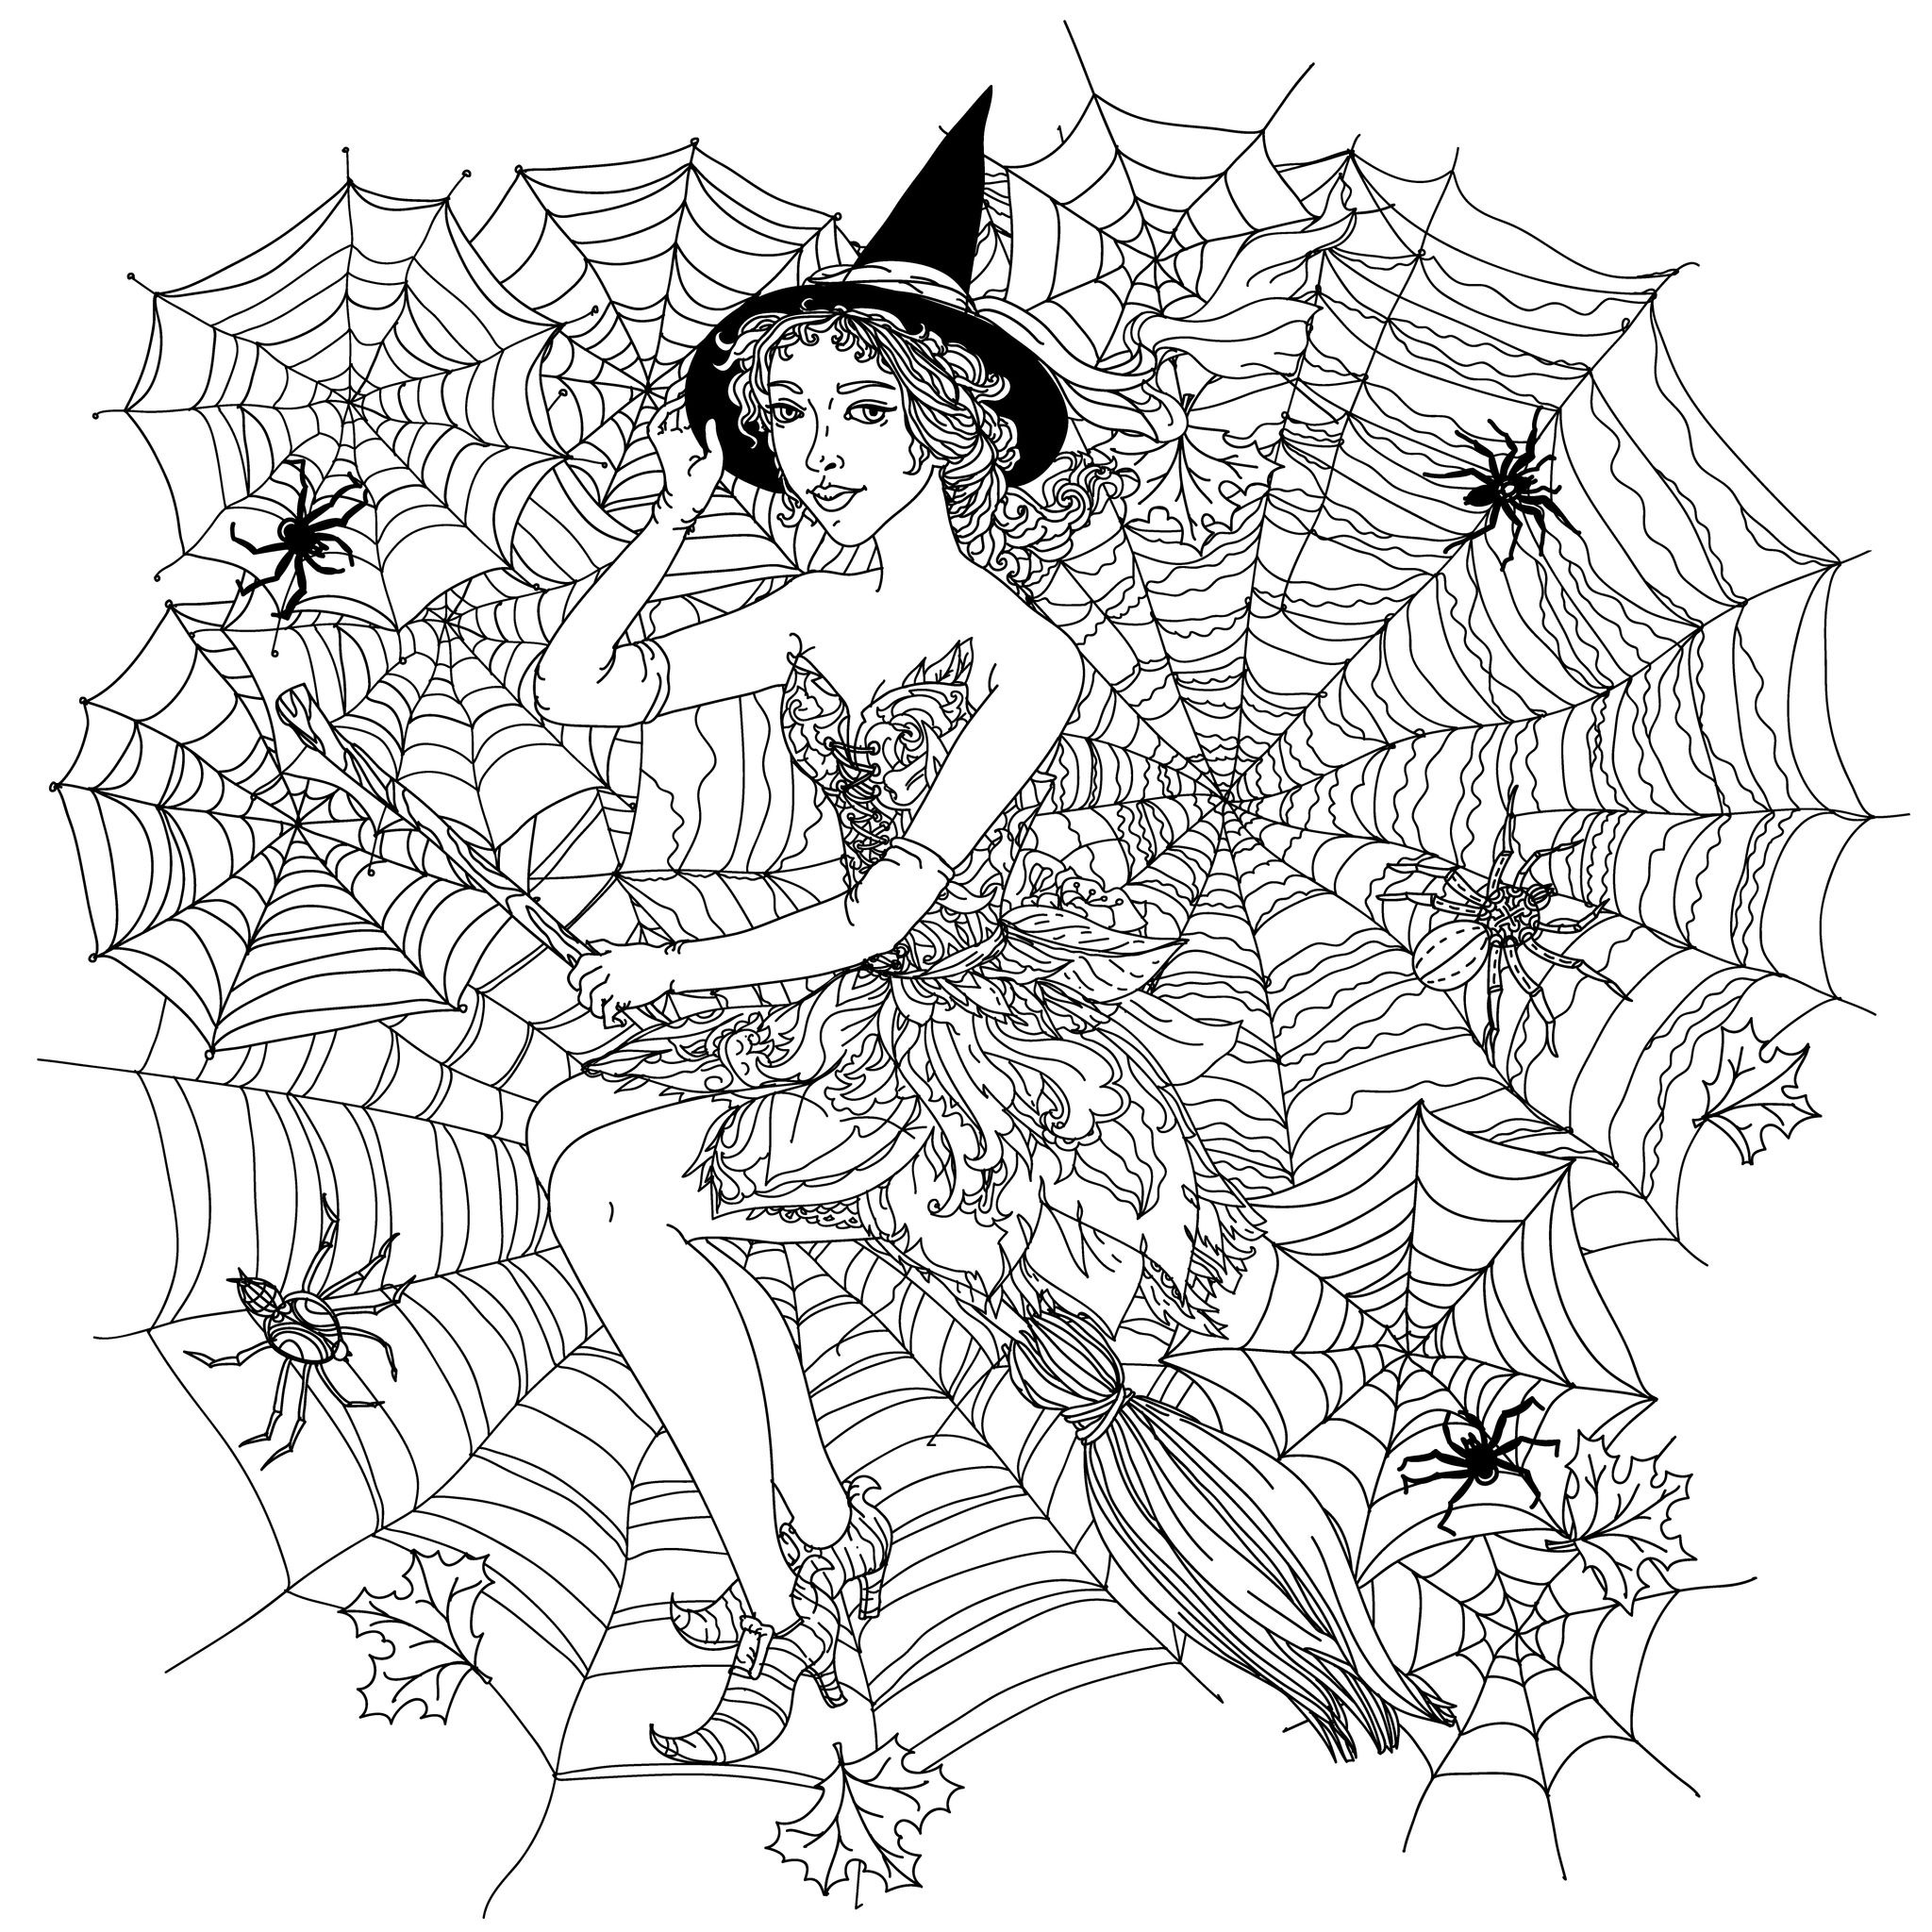 Coloriage Mandala Sorciere.46314974 Beautiful Fashion Woman As A Witch With Design With Cobwebs